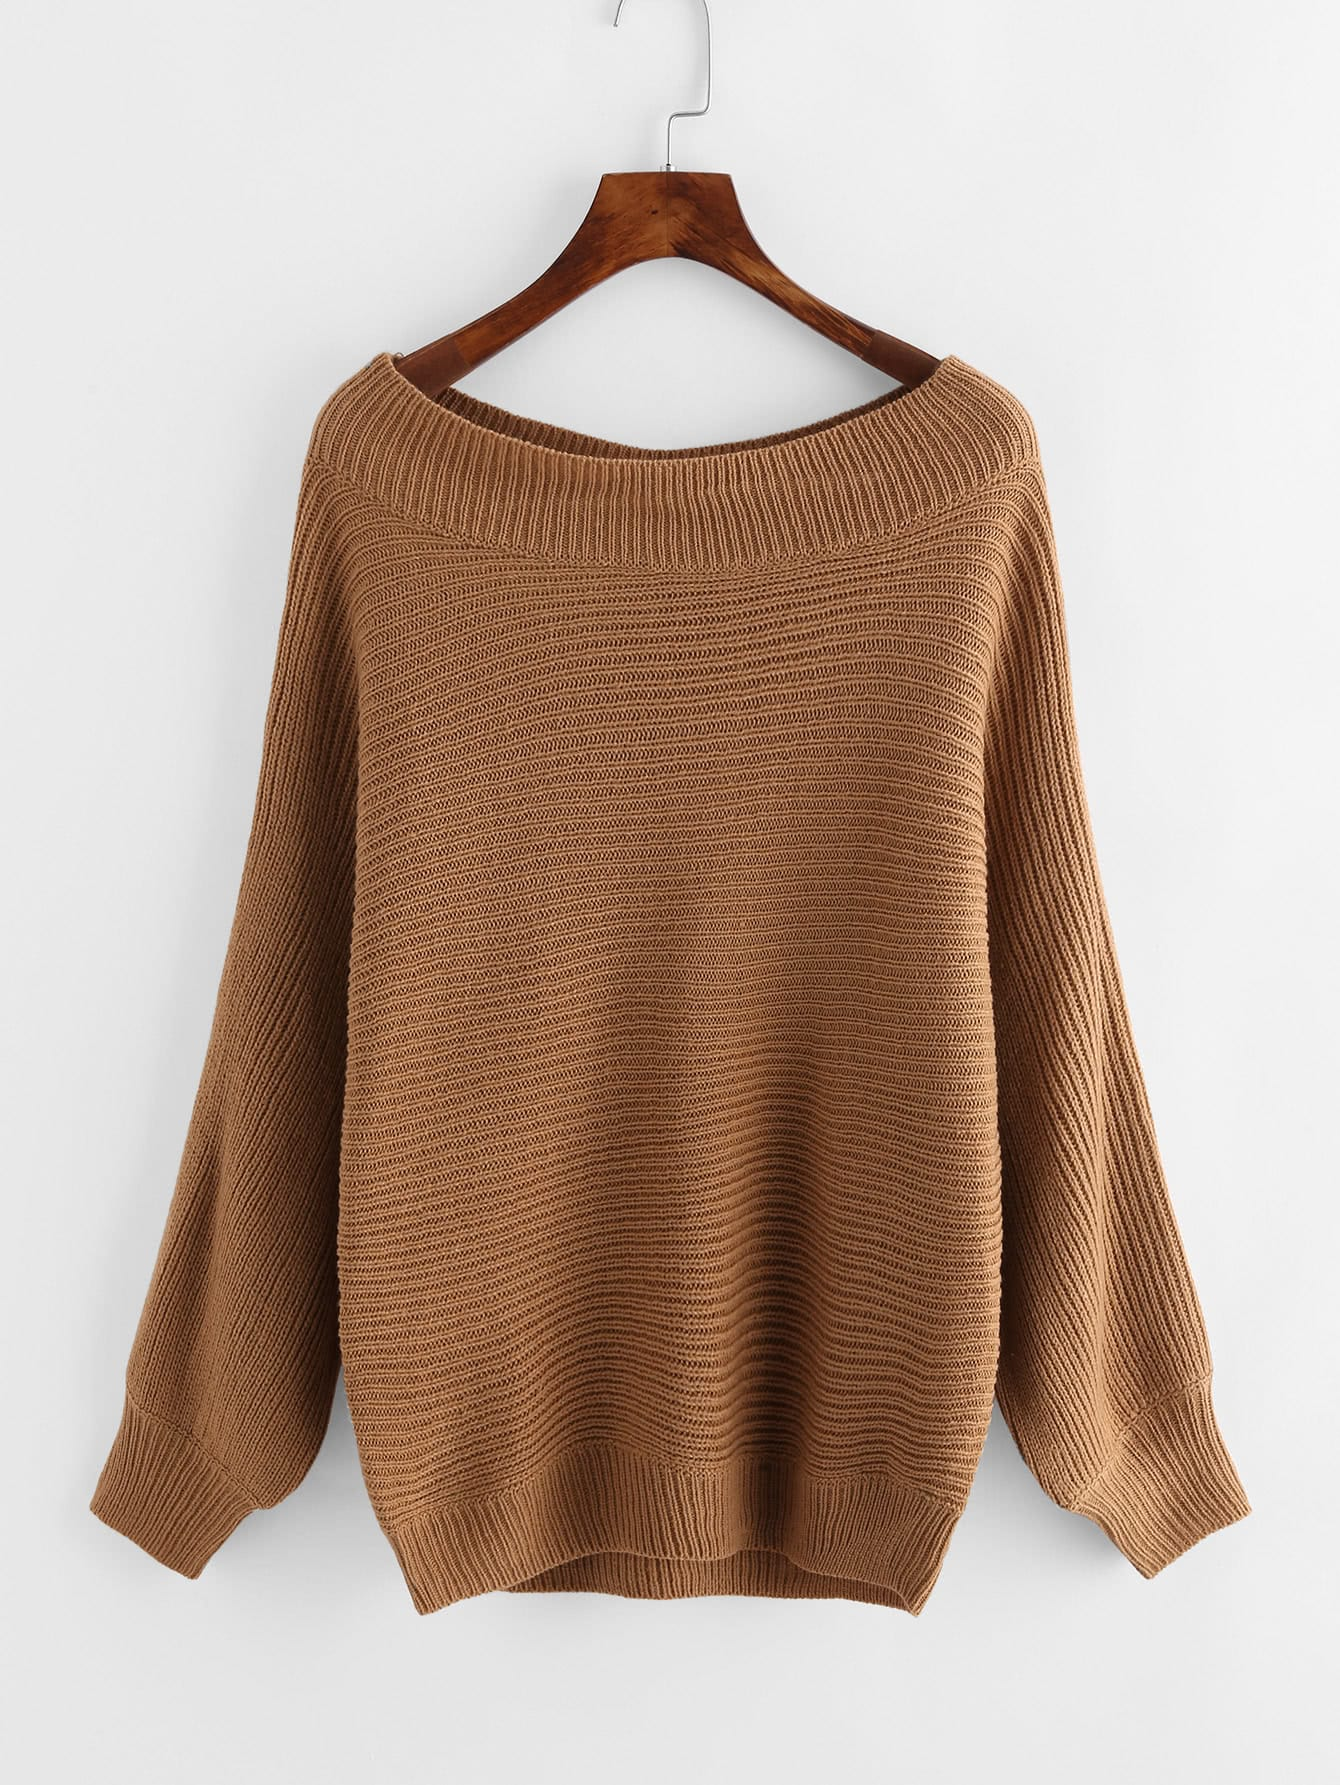 Boat Neckline Textured Knit Sweater boat neckline striped blouse with buttons